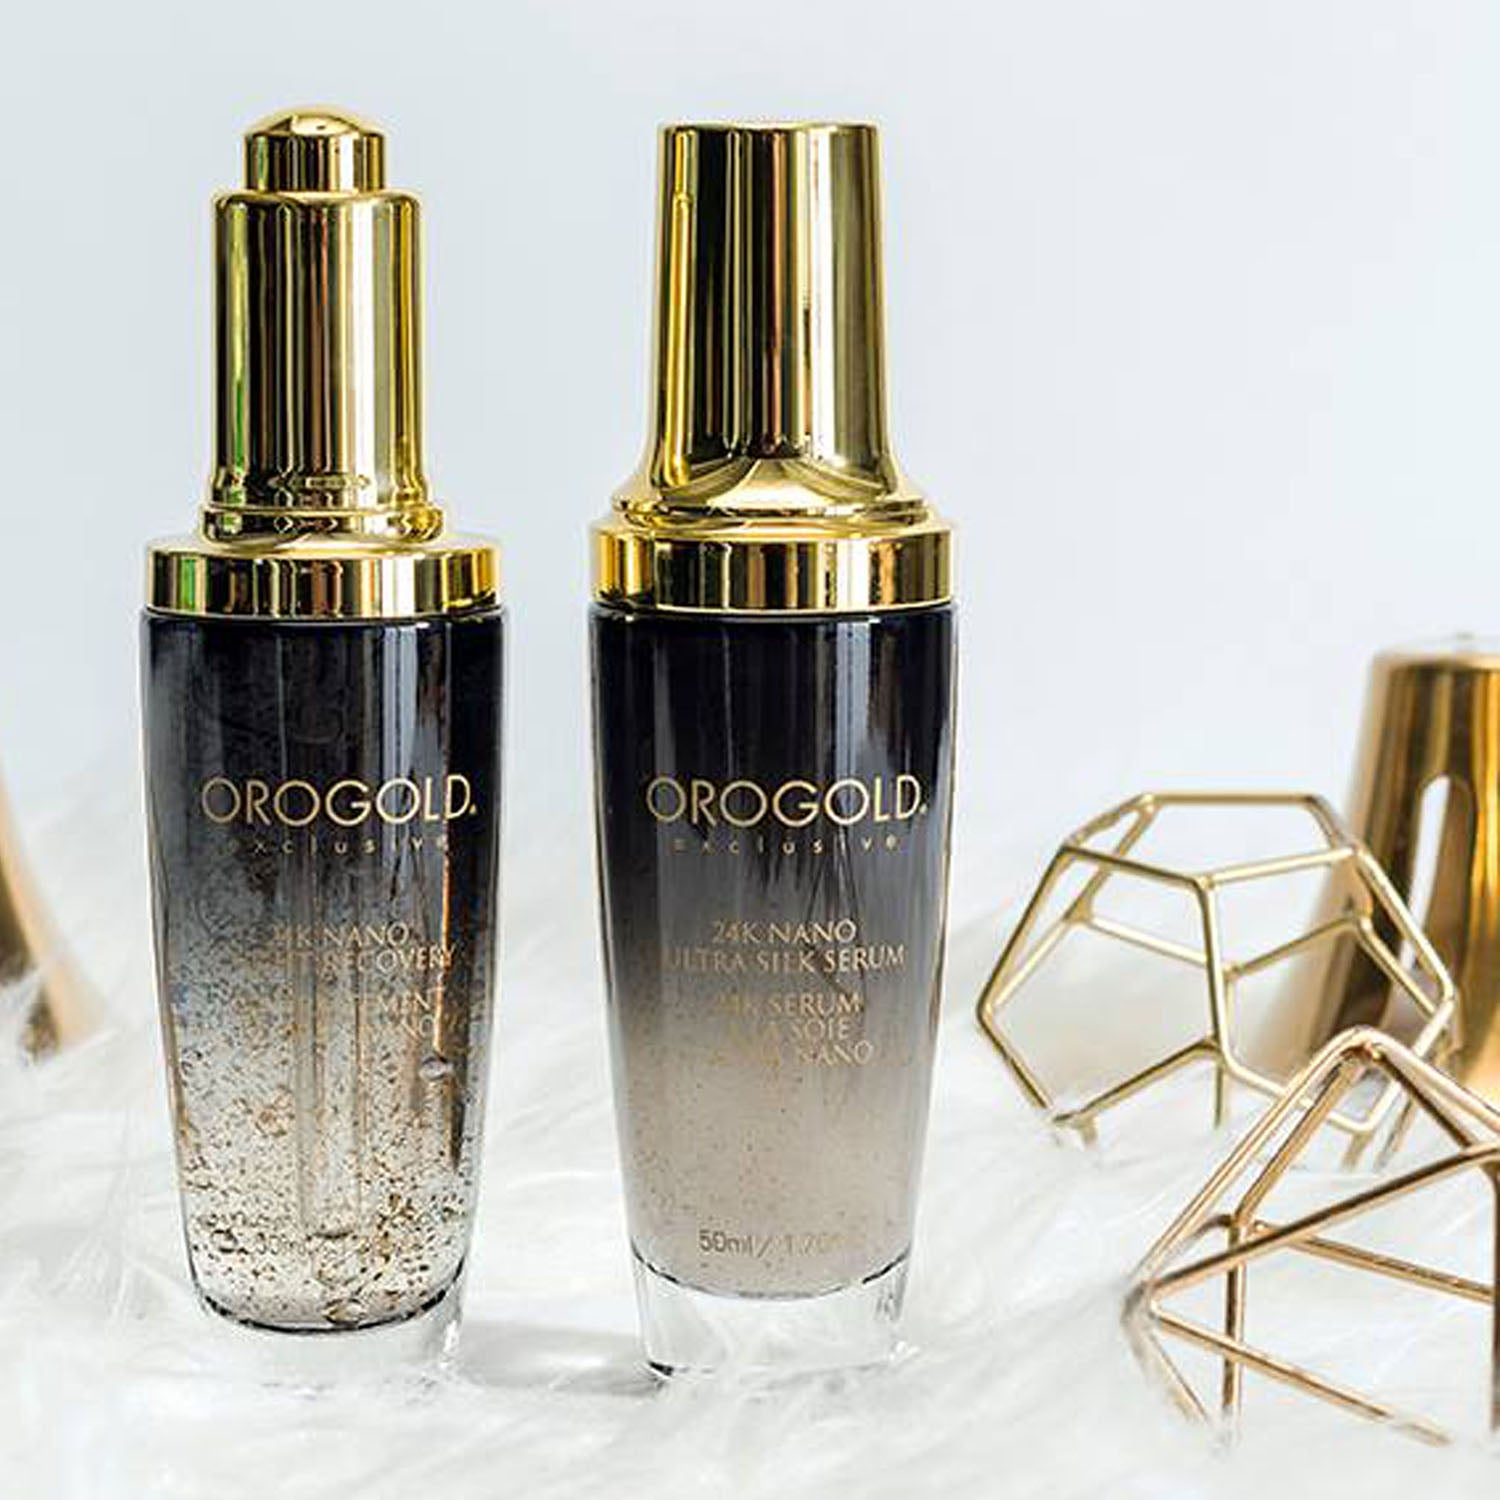 orogold 24k nano ultra silk serum